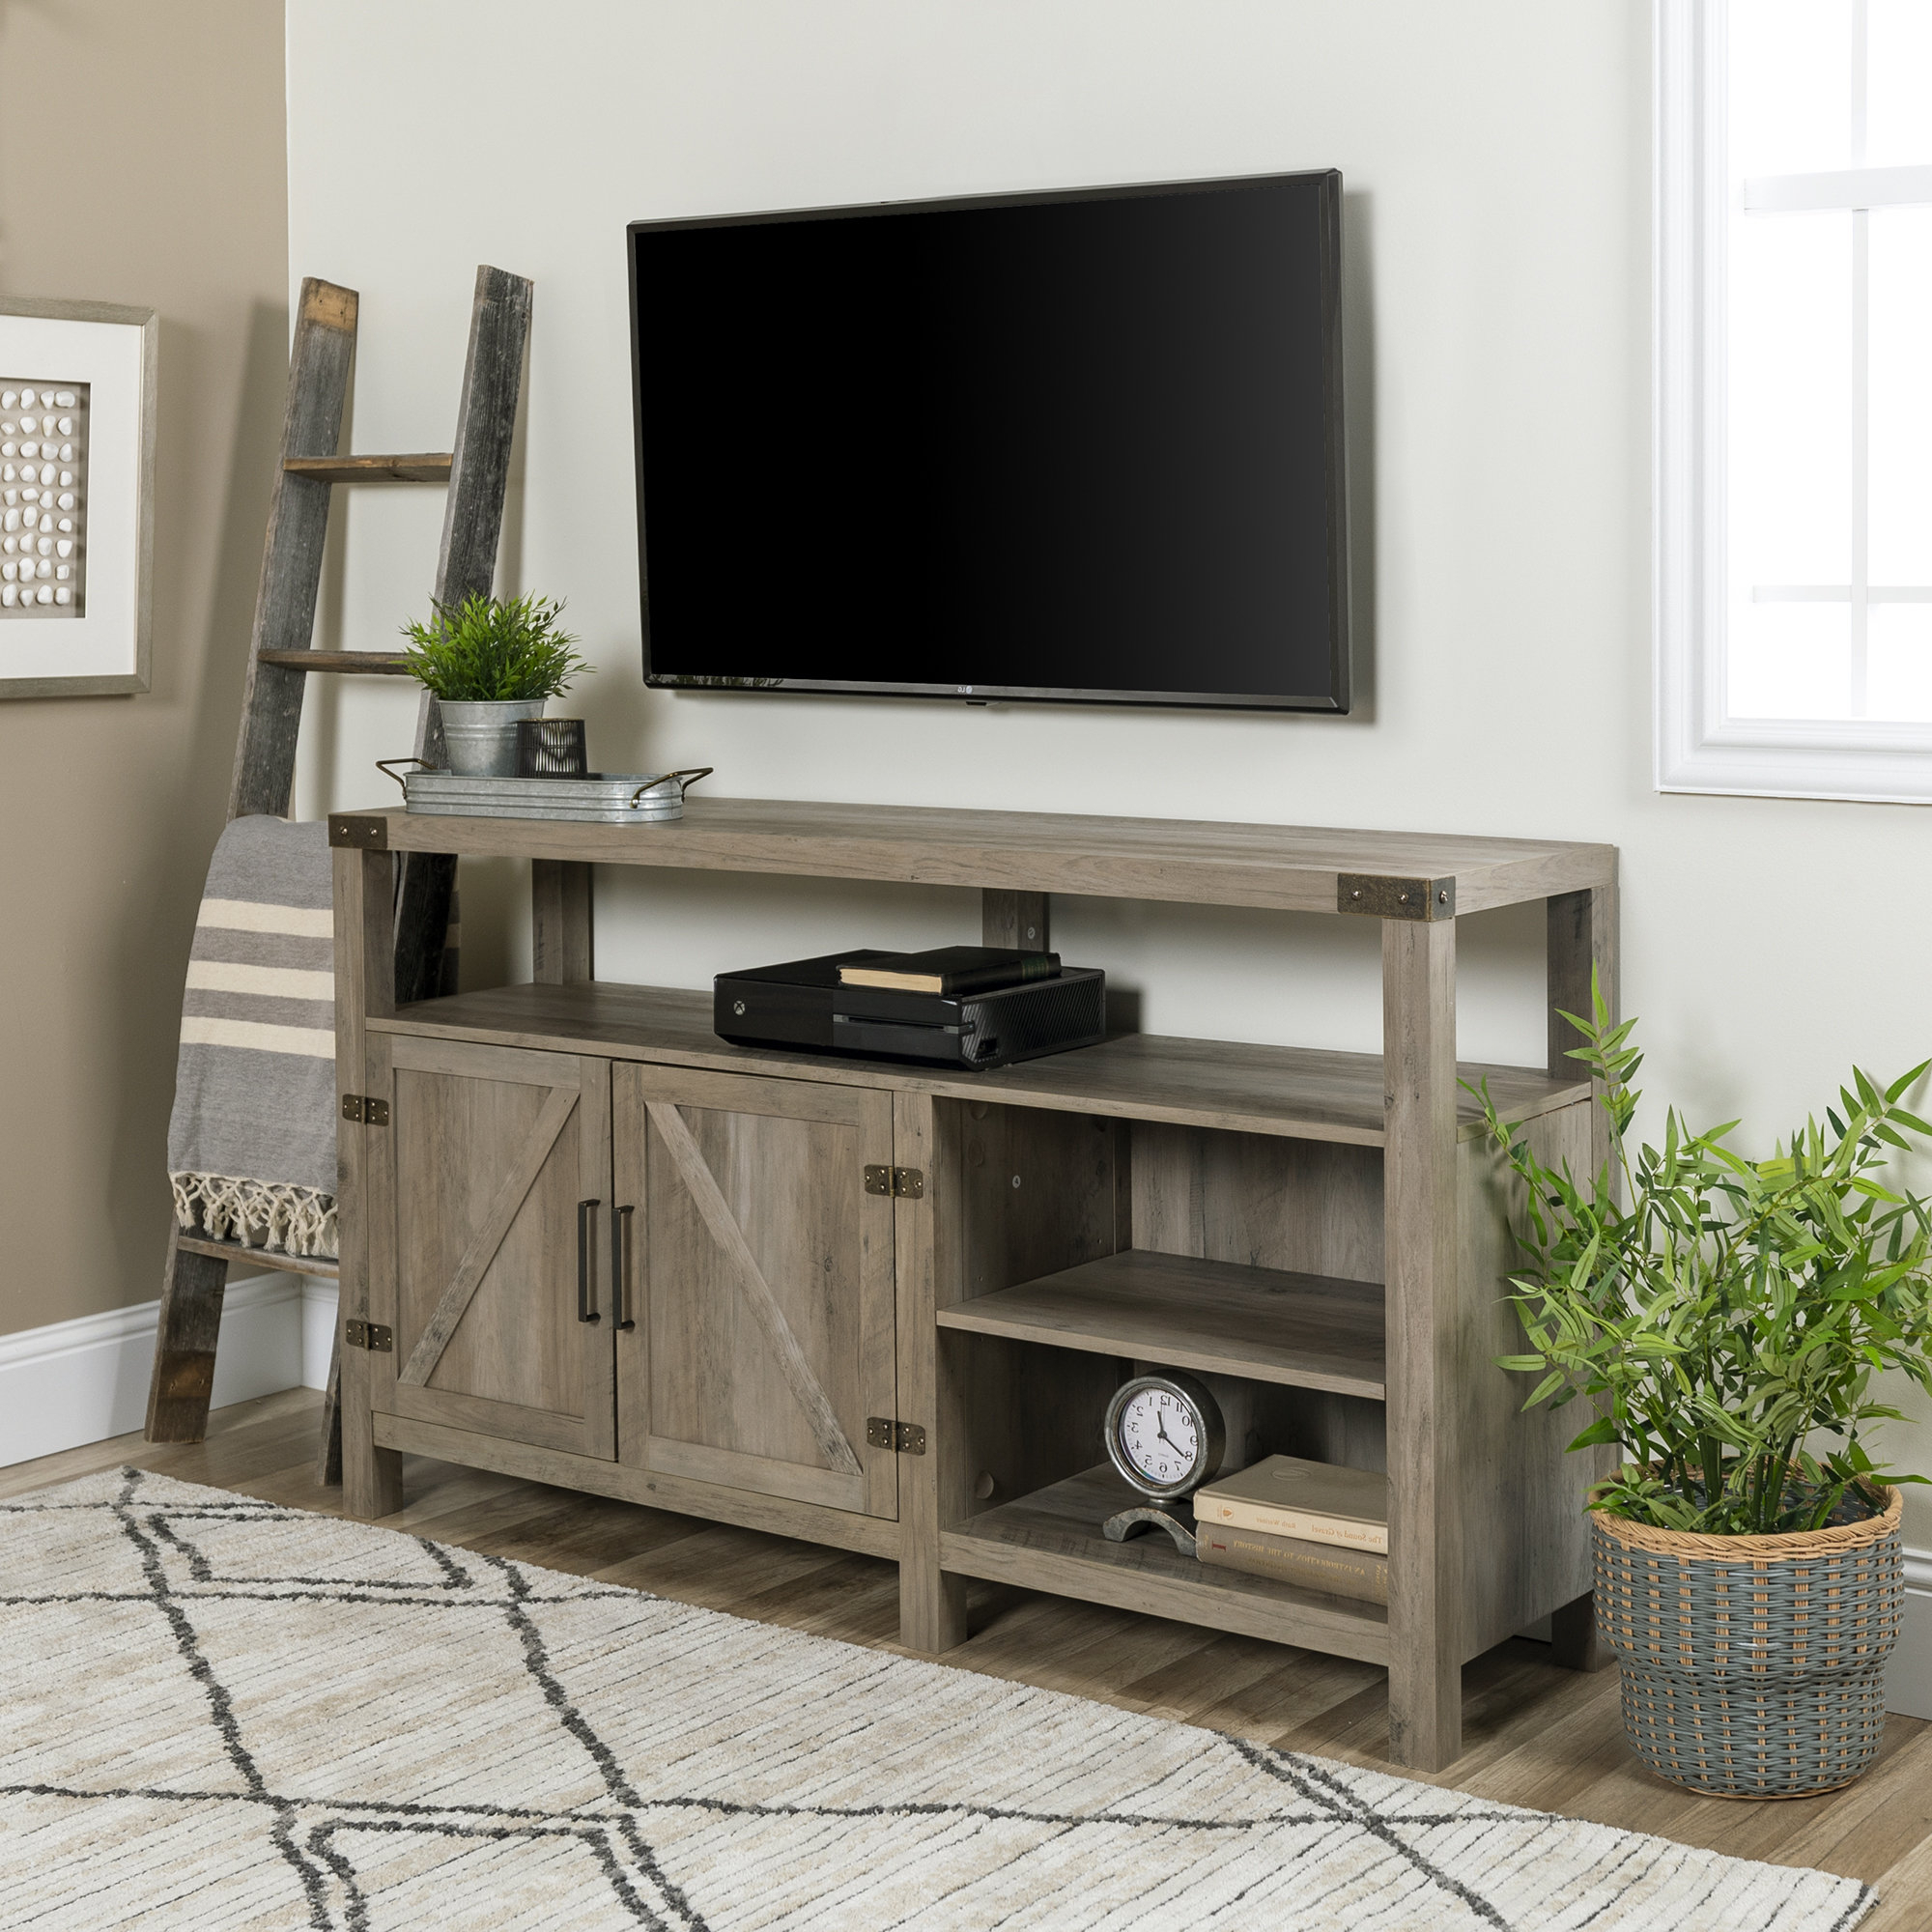 Tall Tv Stands You'll Love | Wayfair With Regard To Wyatt 68 Inch Tv Stands (View 16 of 20)